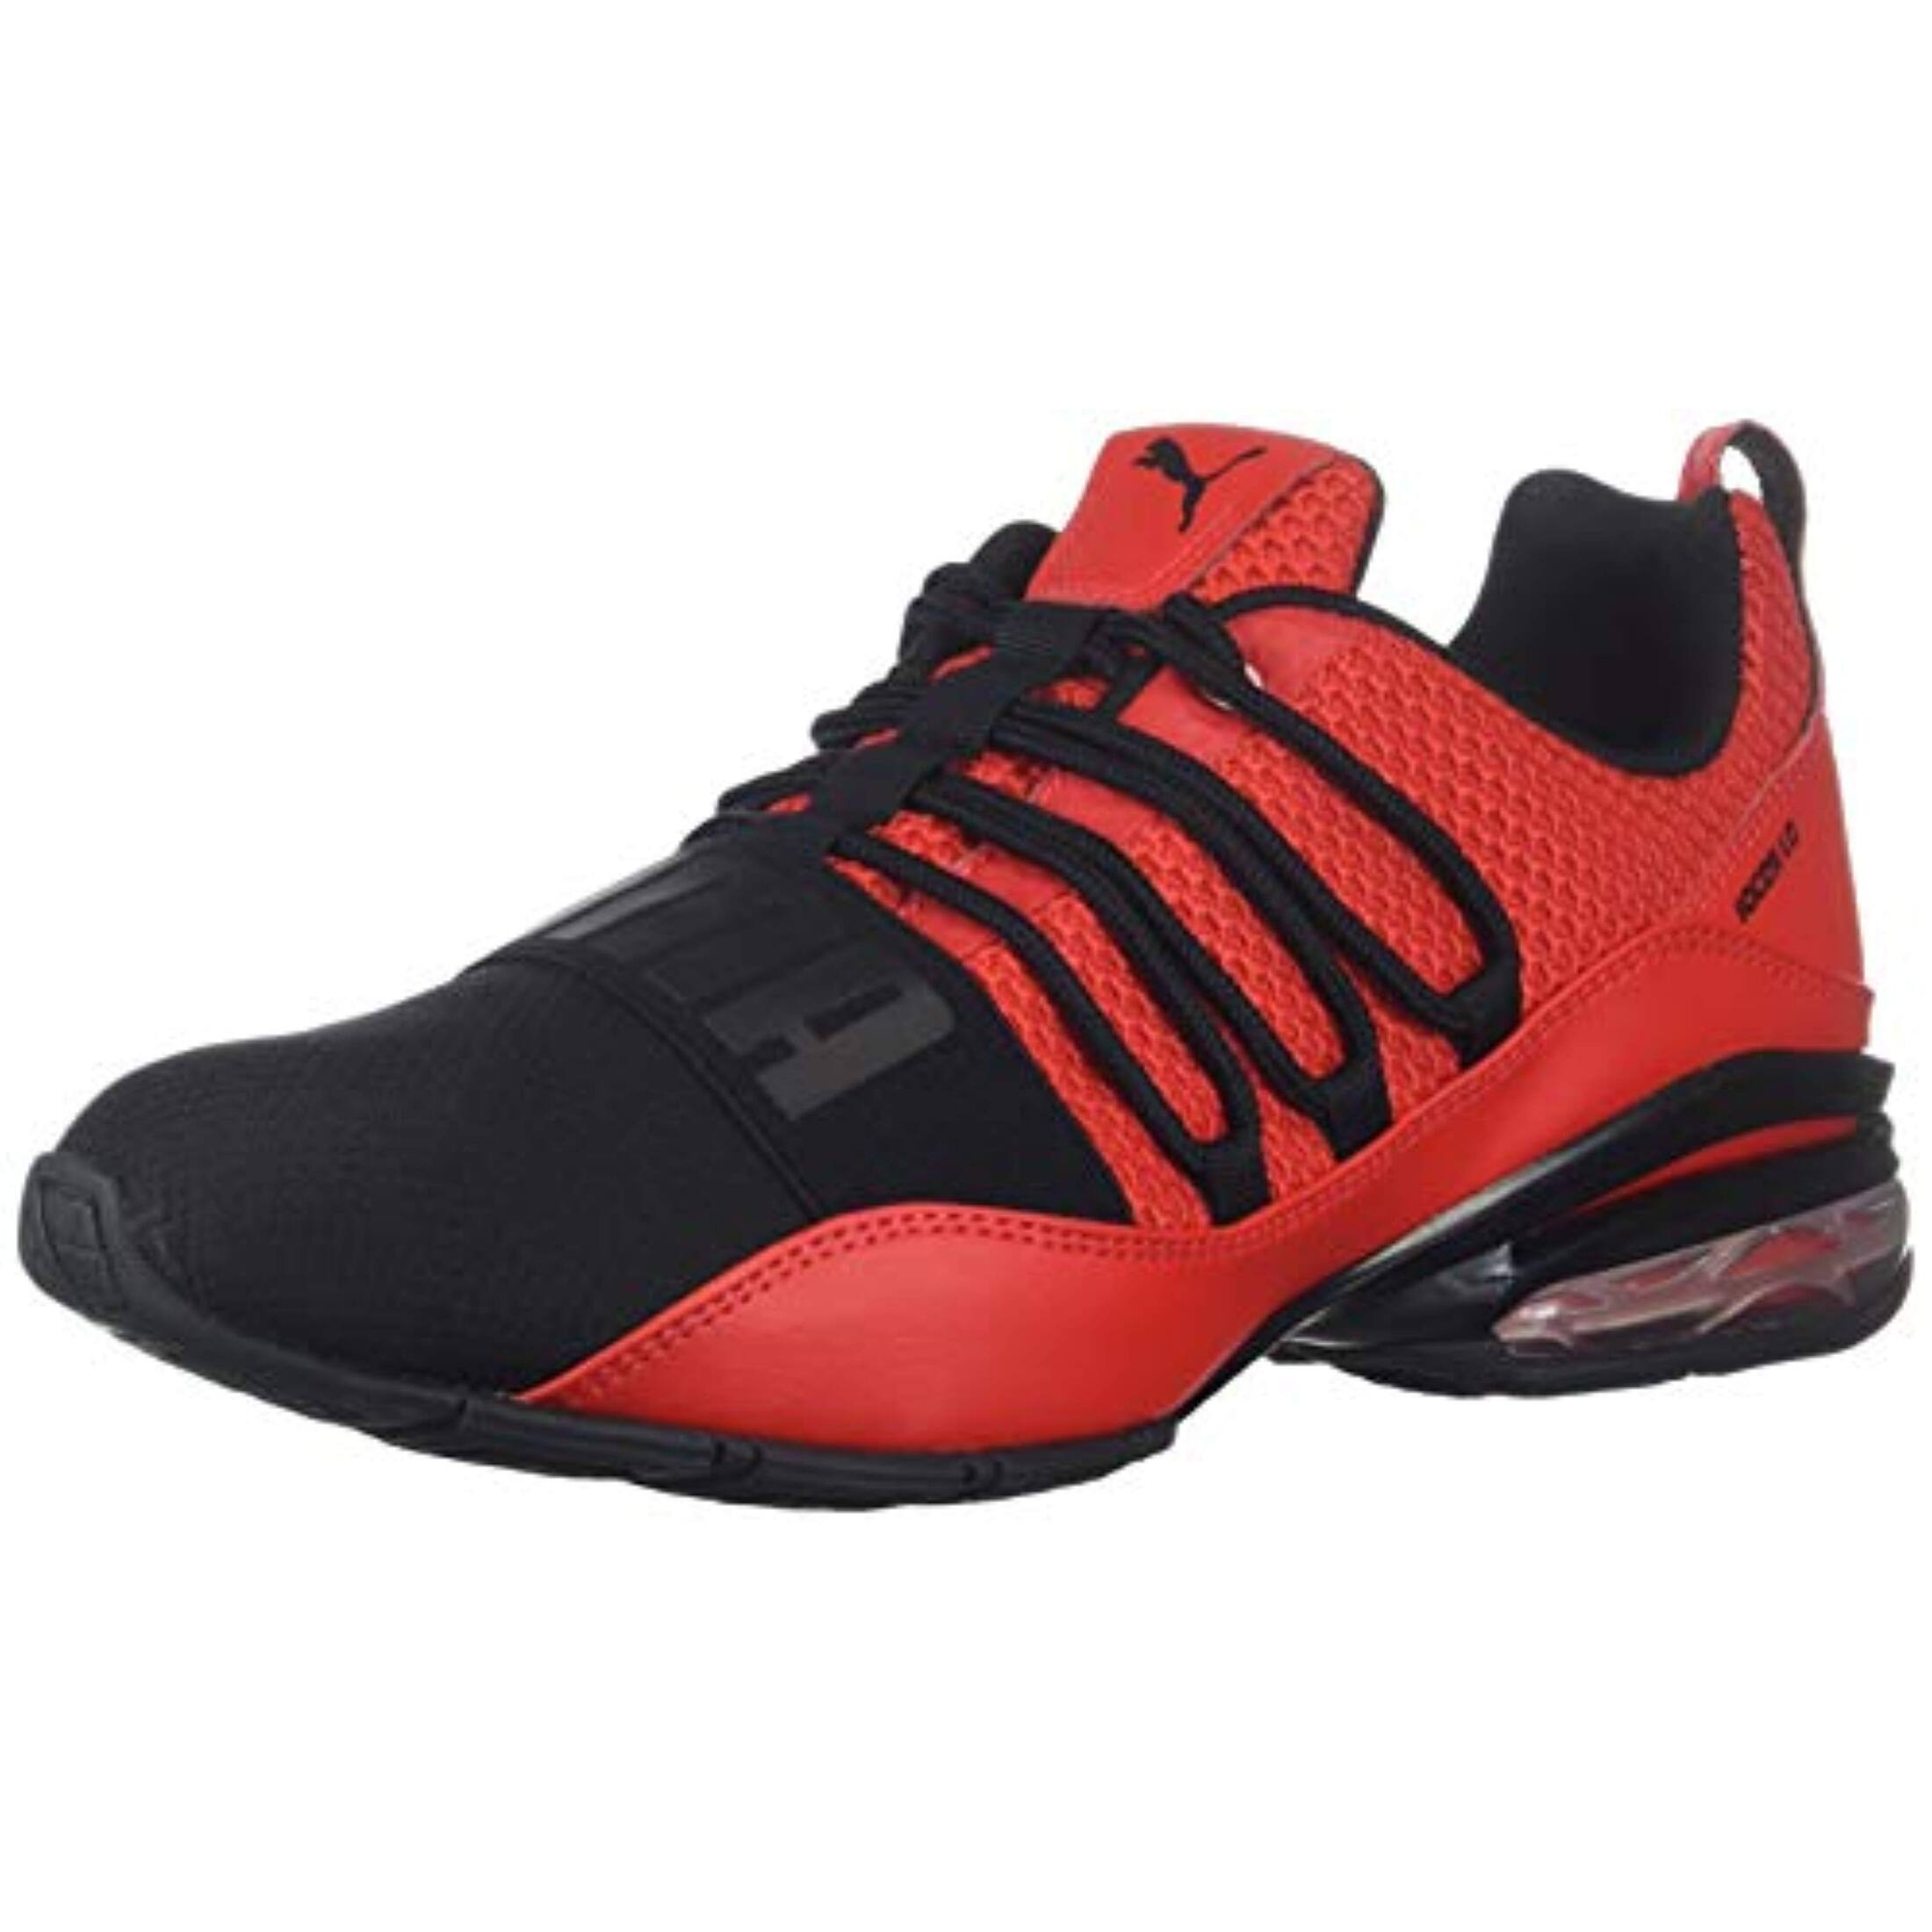 red and black puma shoes